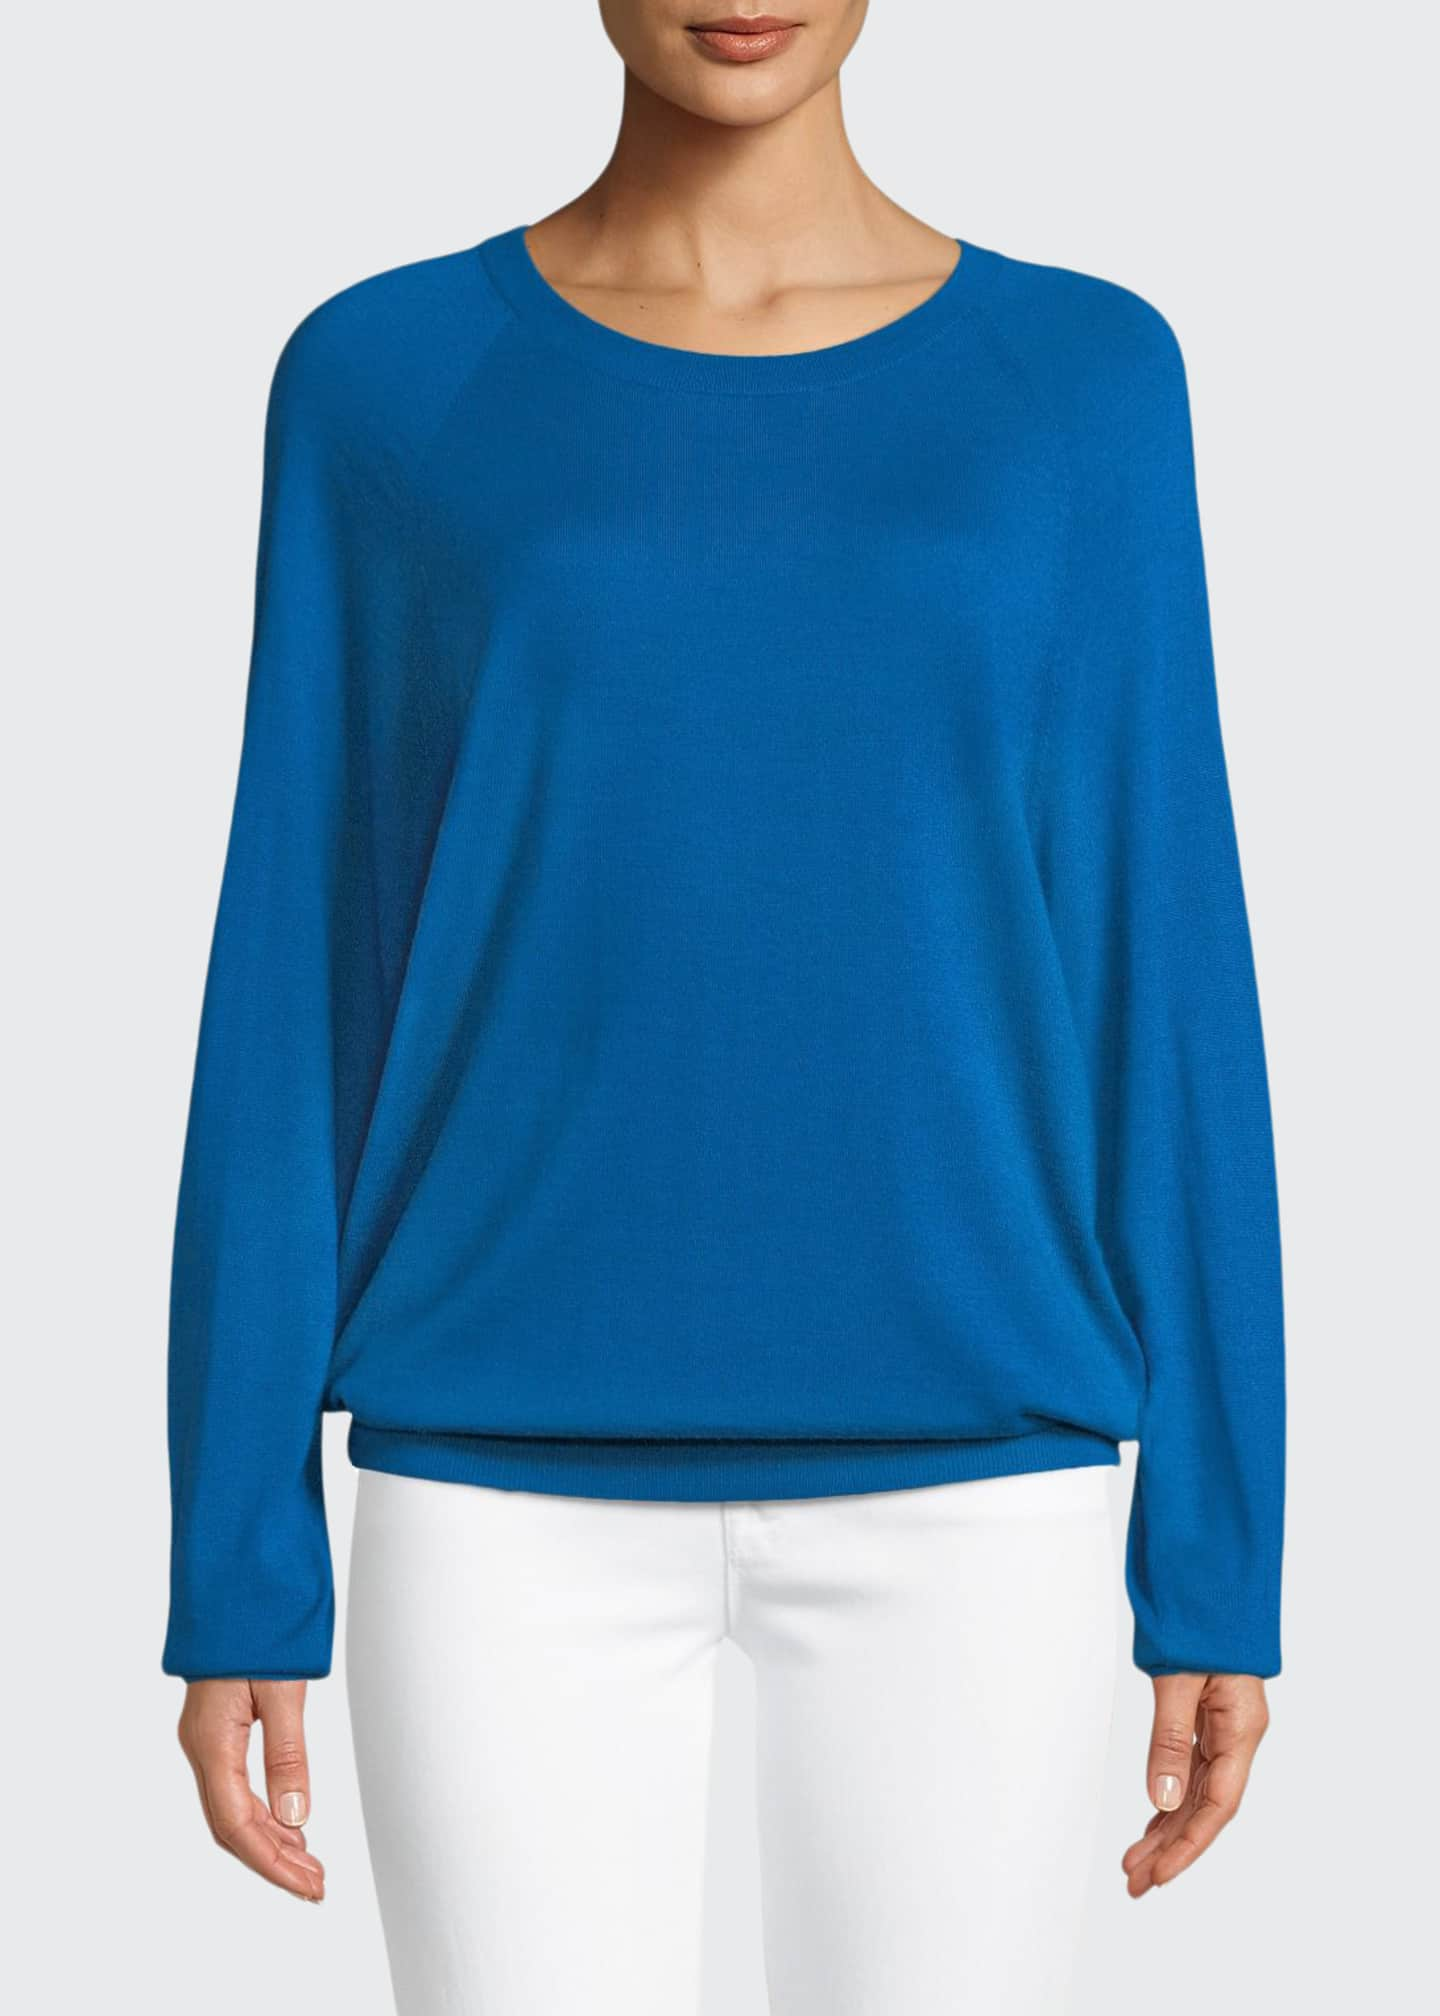 Michael Kors Collection Round-Neck Long-Sleeve Merino/Cashmere